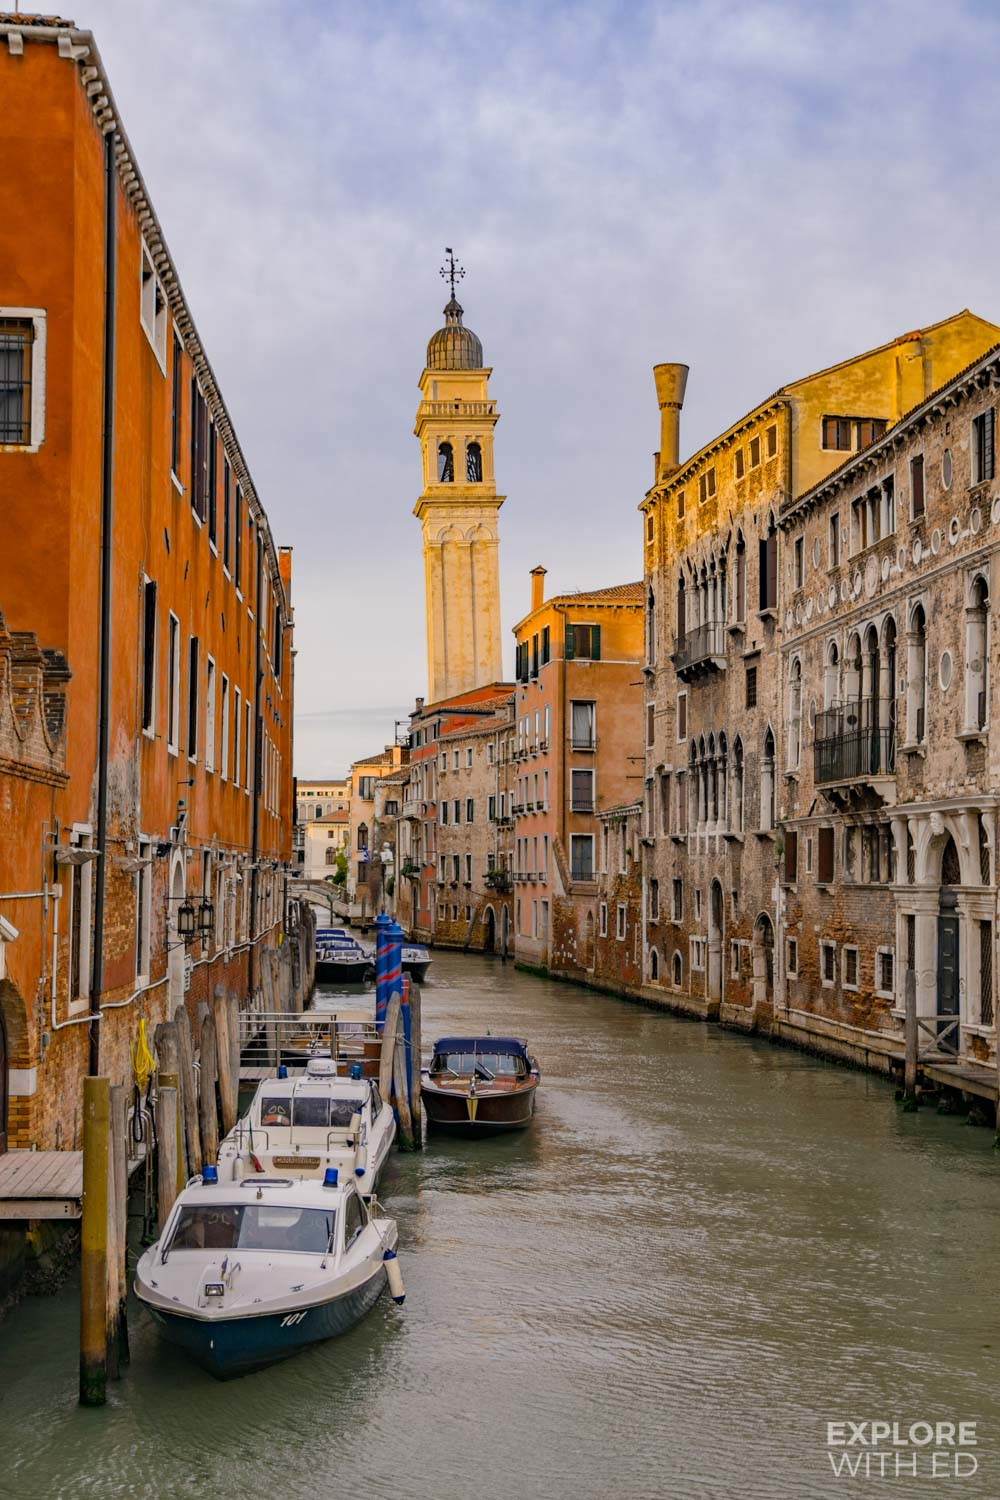 The romantic canals of Venice during the golden hour